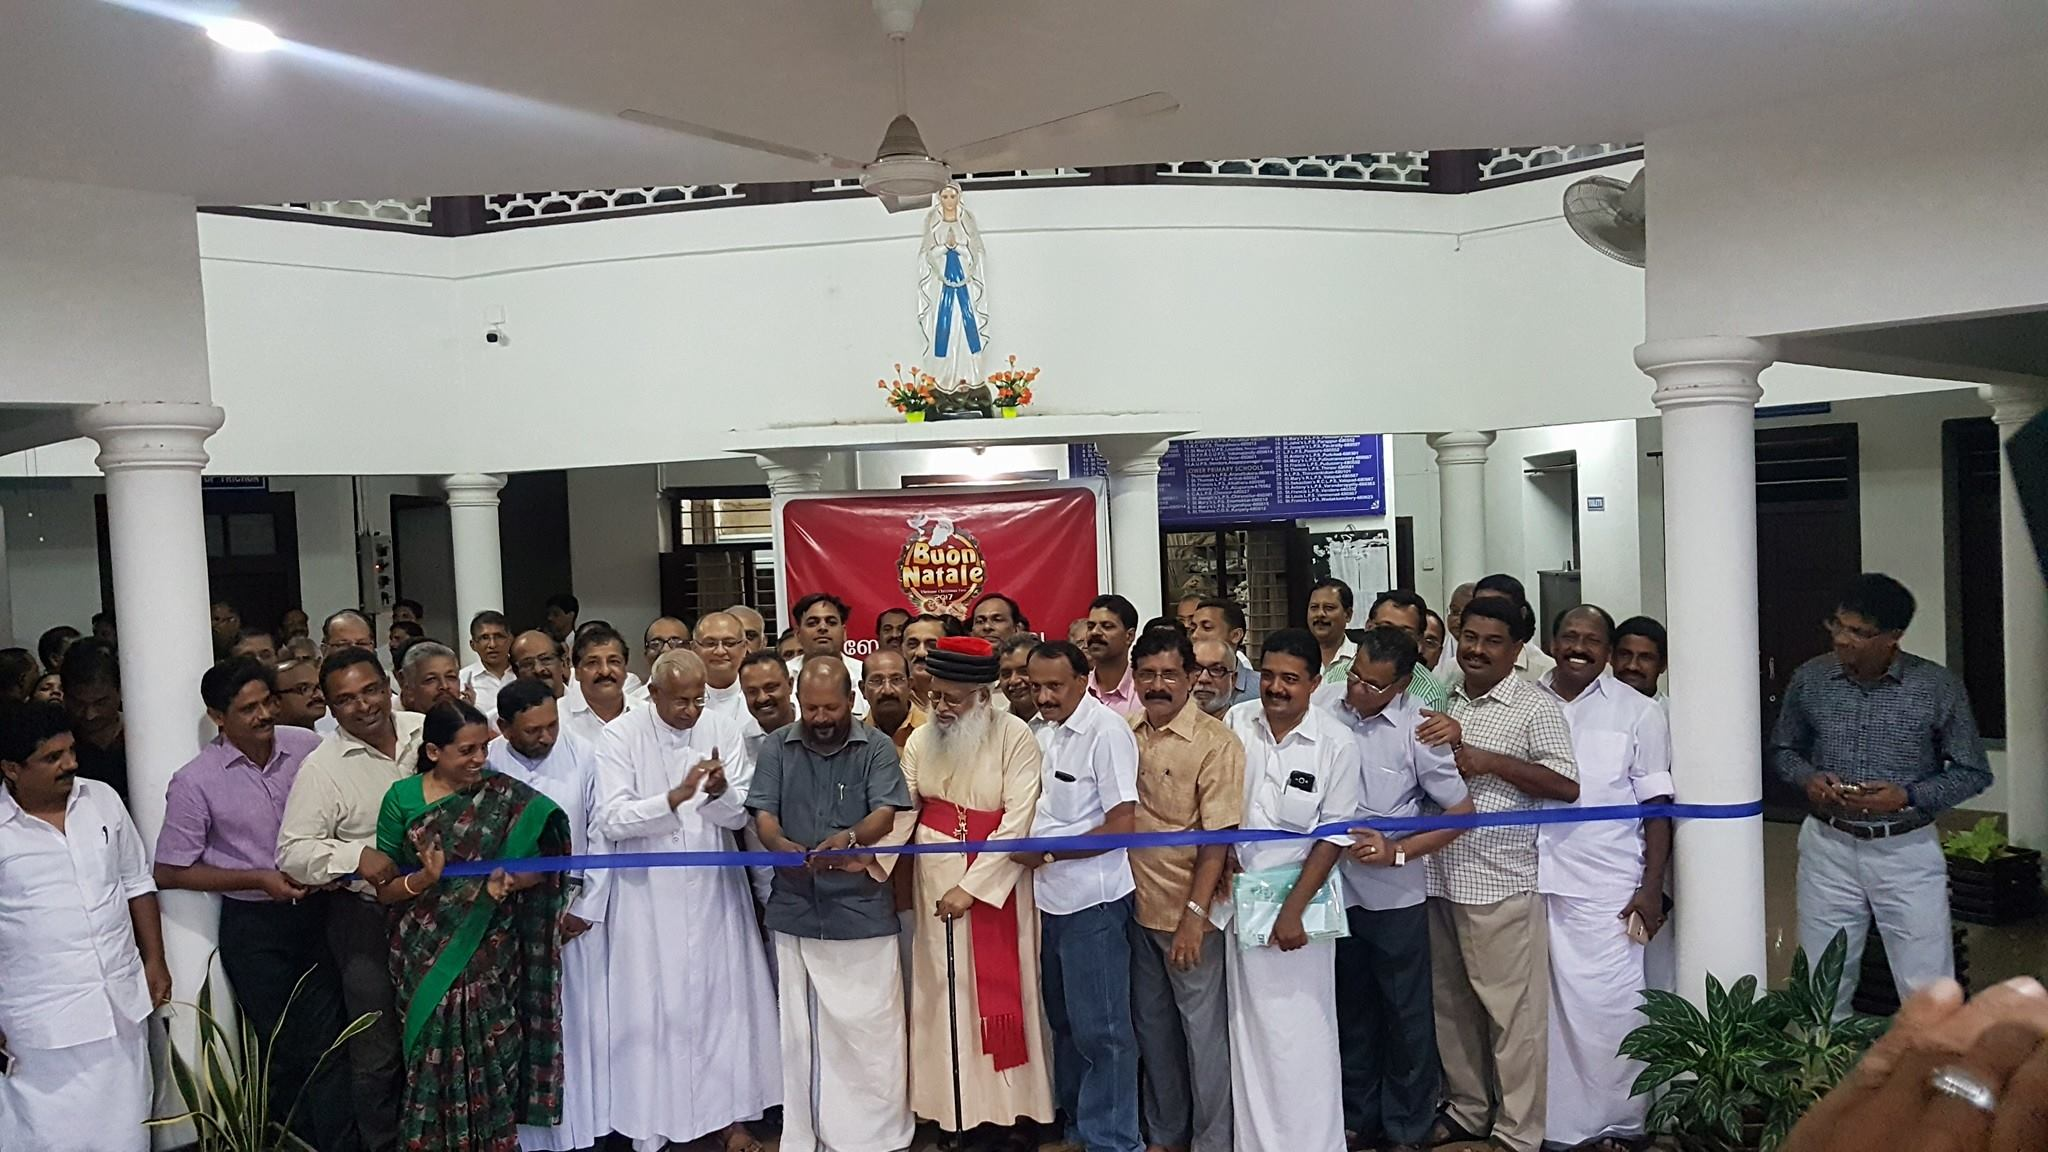 Buon Natale Thrissur.News Archdiocese Of Trichur